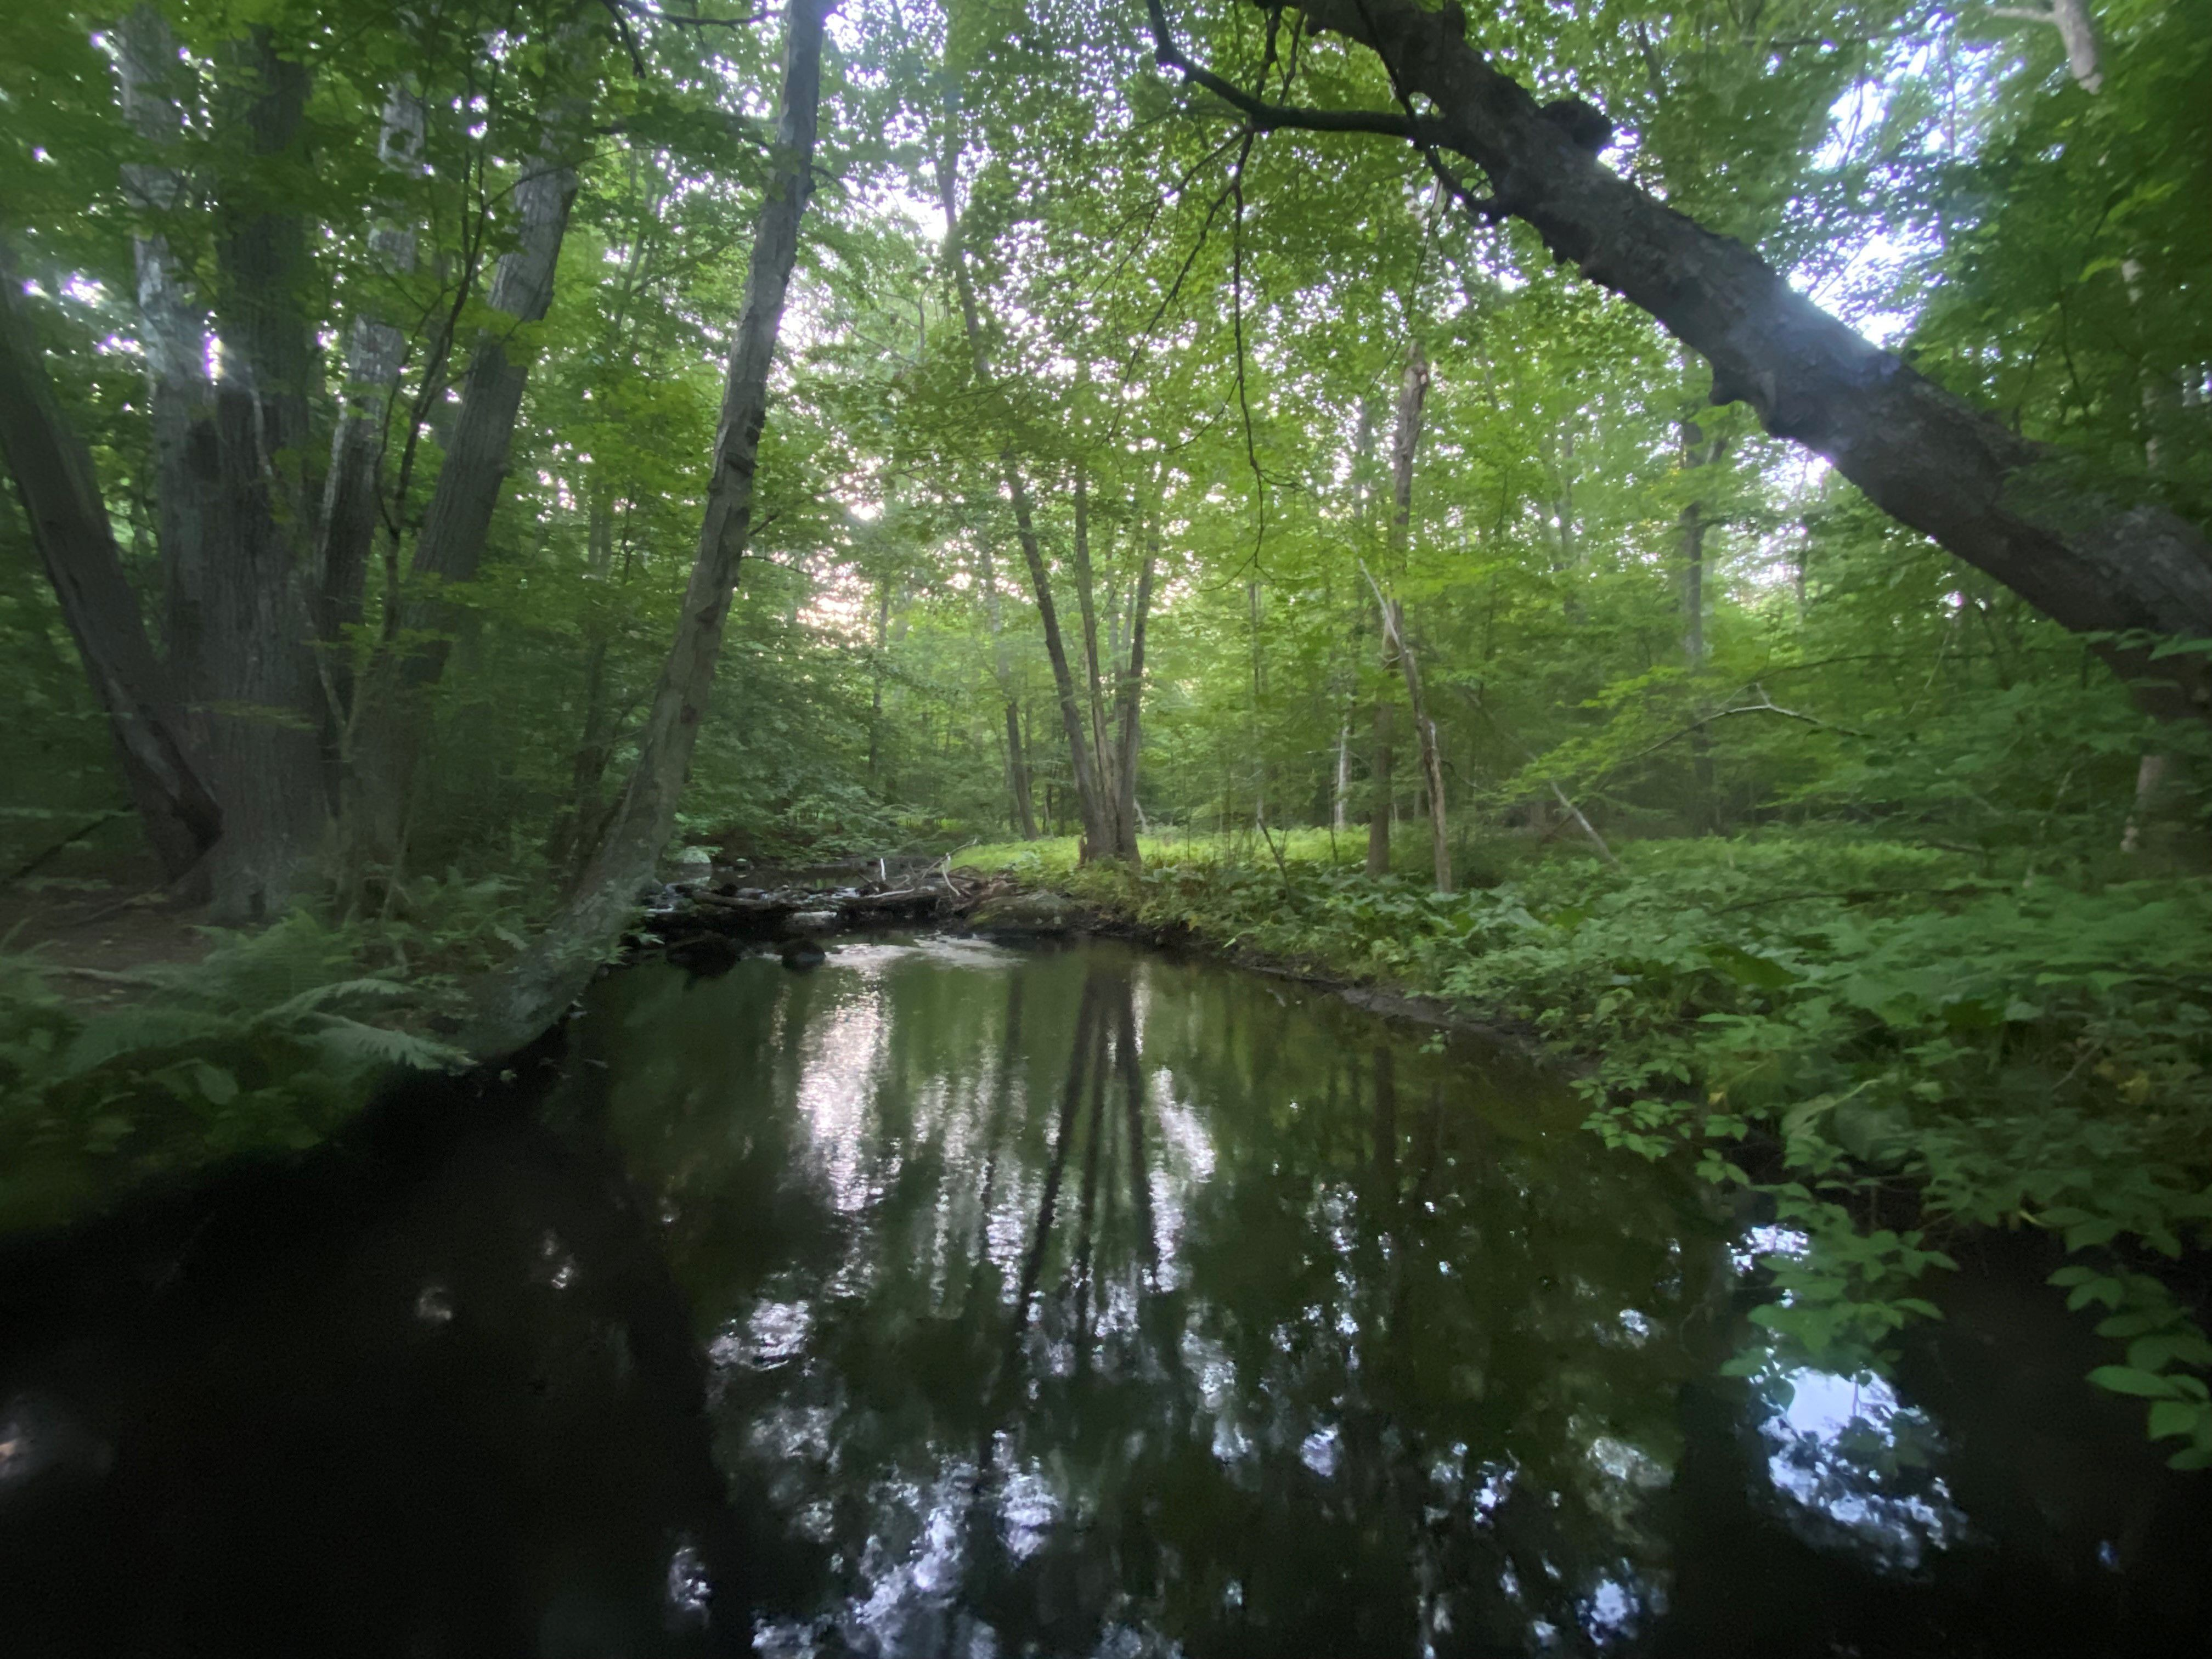 At dusk, the dark surface of a small river reflects the tree canopy above. A cluster of large red maples stands on the left bank.